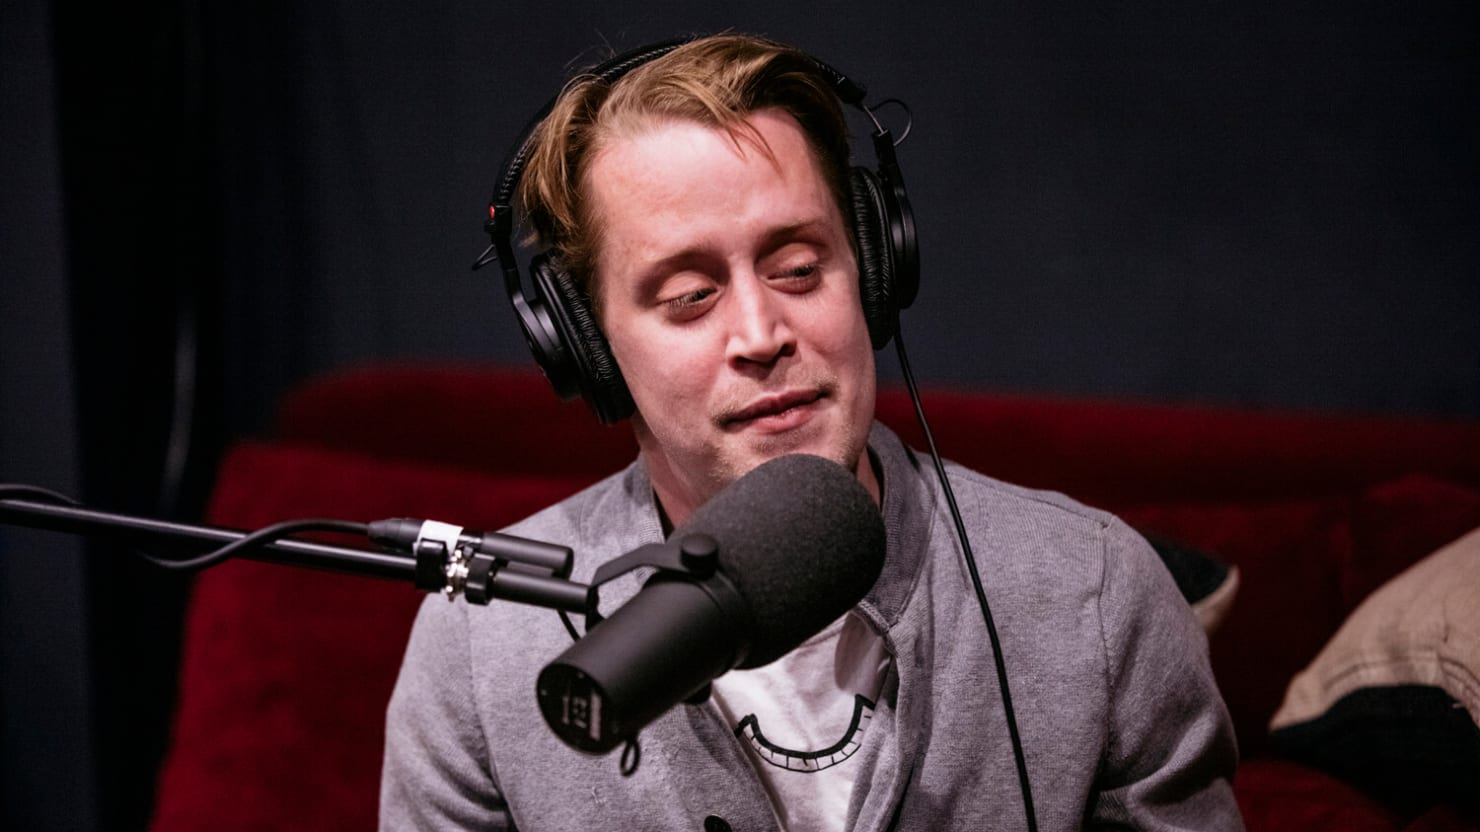 Macaulay Culkin Defends Controversial 'Friendship' With Michael Jackson